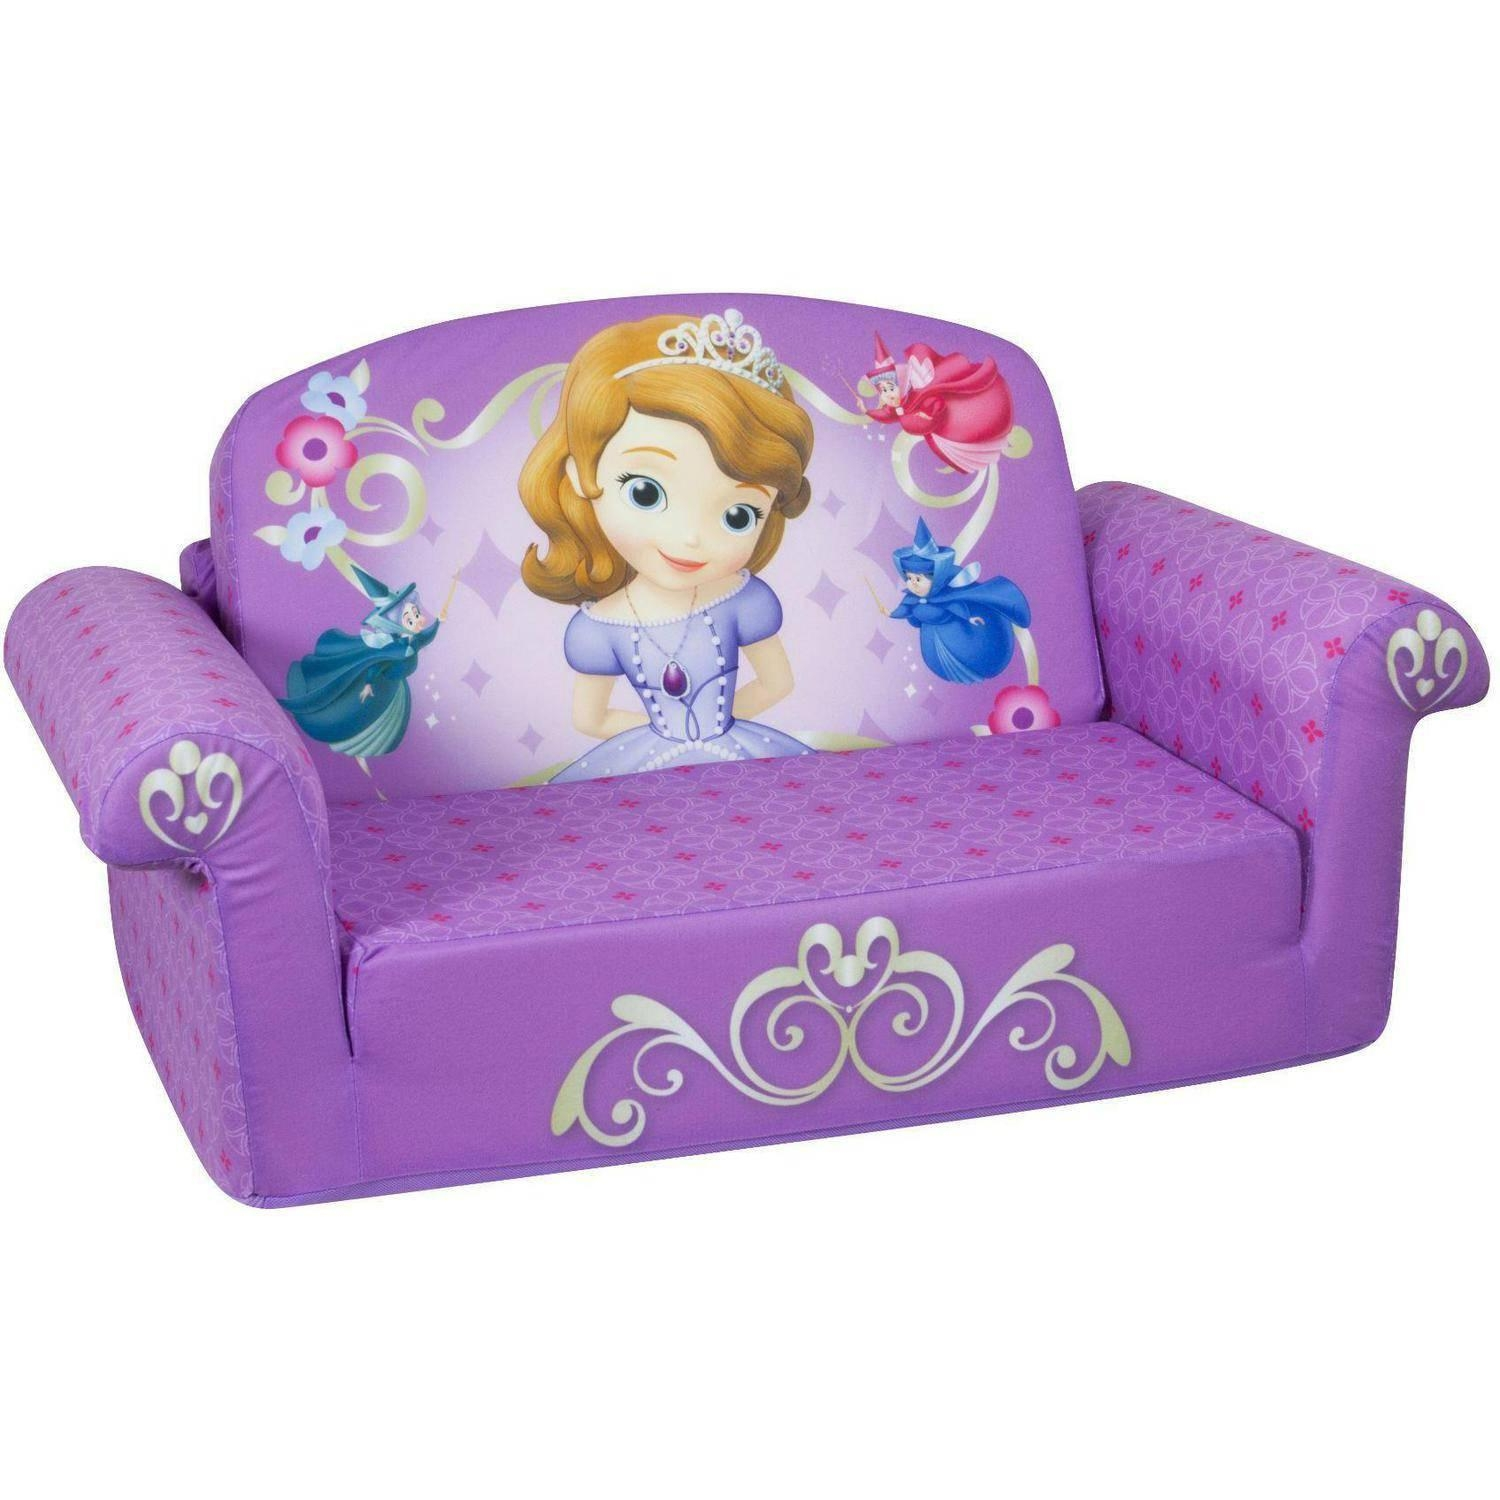 Marshmallow 2 In 1 Flip Open Sofa, Disney Sofia The First Intended For Princess Flip Open Sofas (Image 10 of 20)